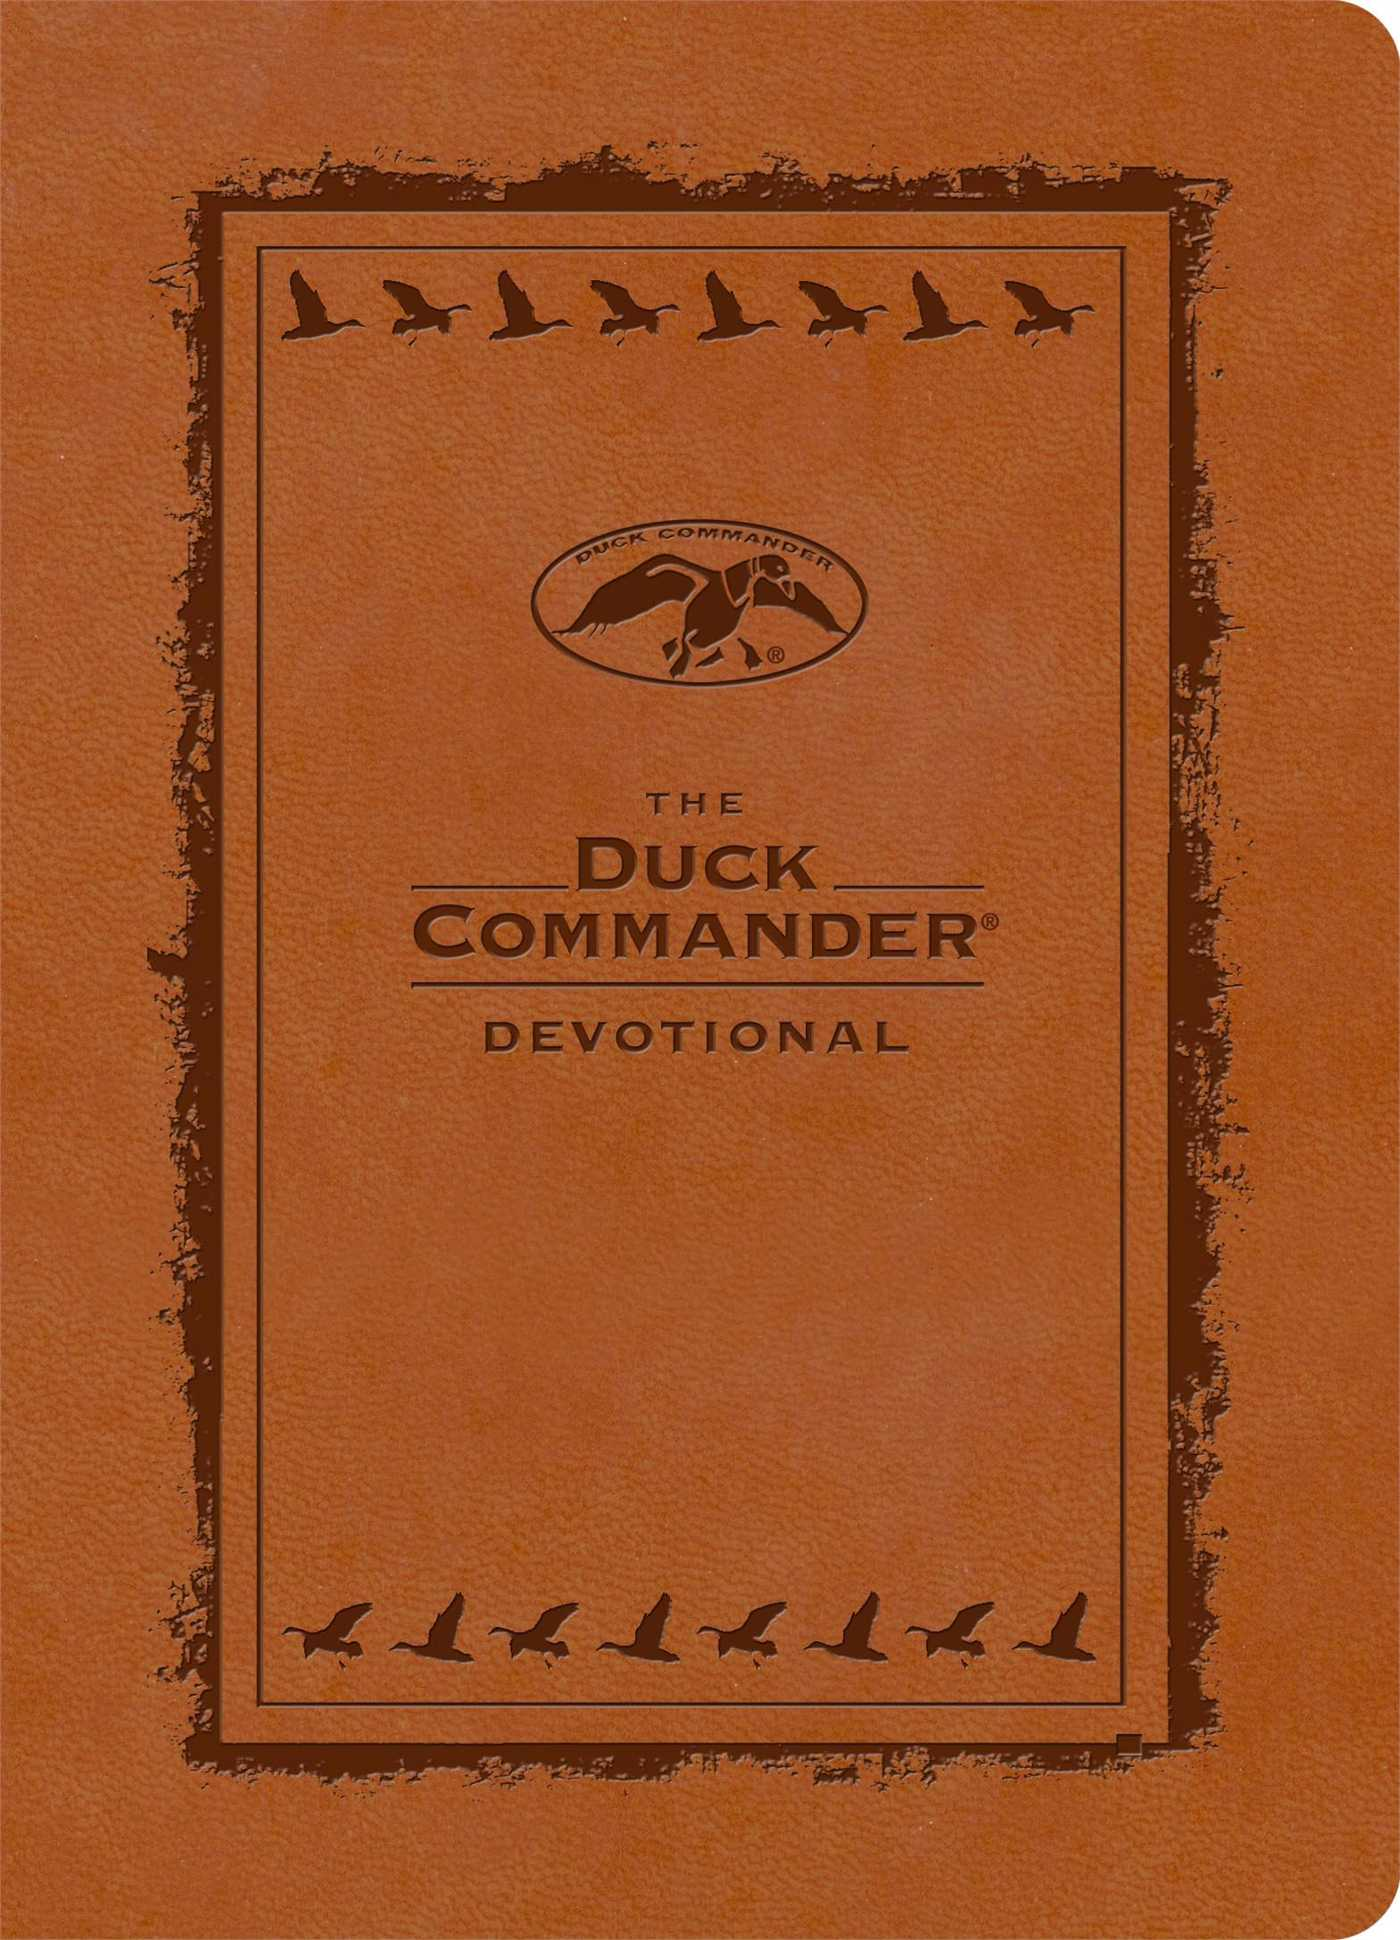 Duck commander devotional leathertouch edition 9781476745541 hr